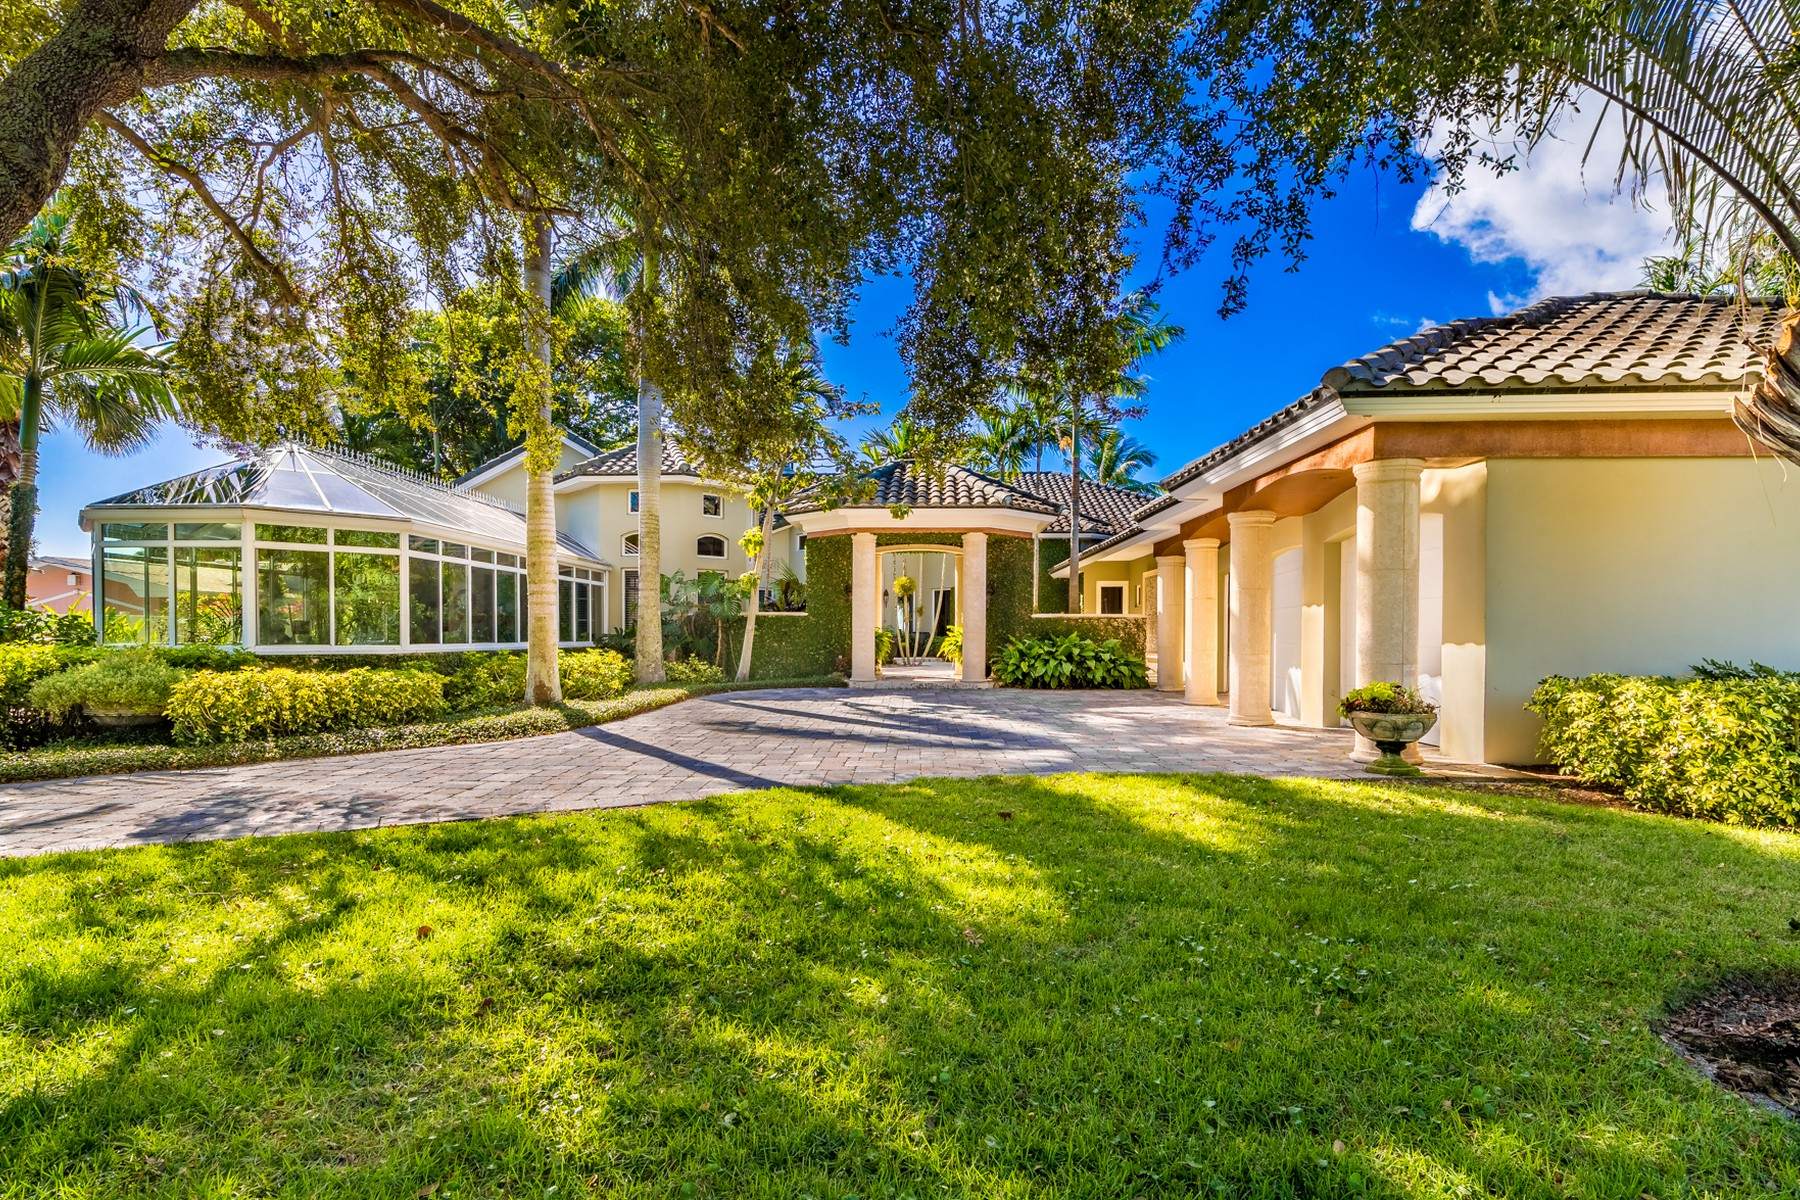 Single Family Homes for Sale at Spectacular Riverfront Home in Sunset Shores 200 Riverside Drive Melbourne Beach, Florida 32951 United States